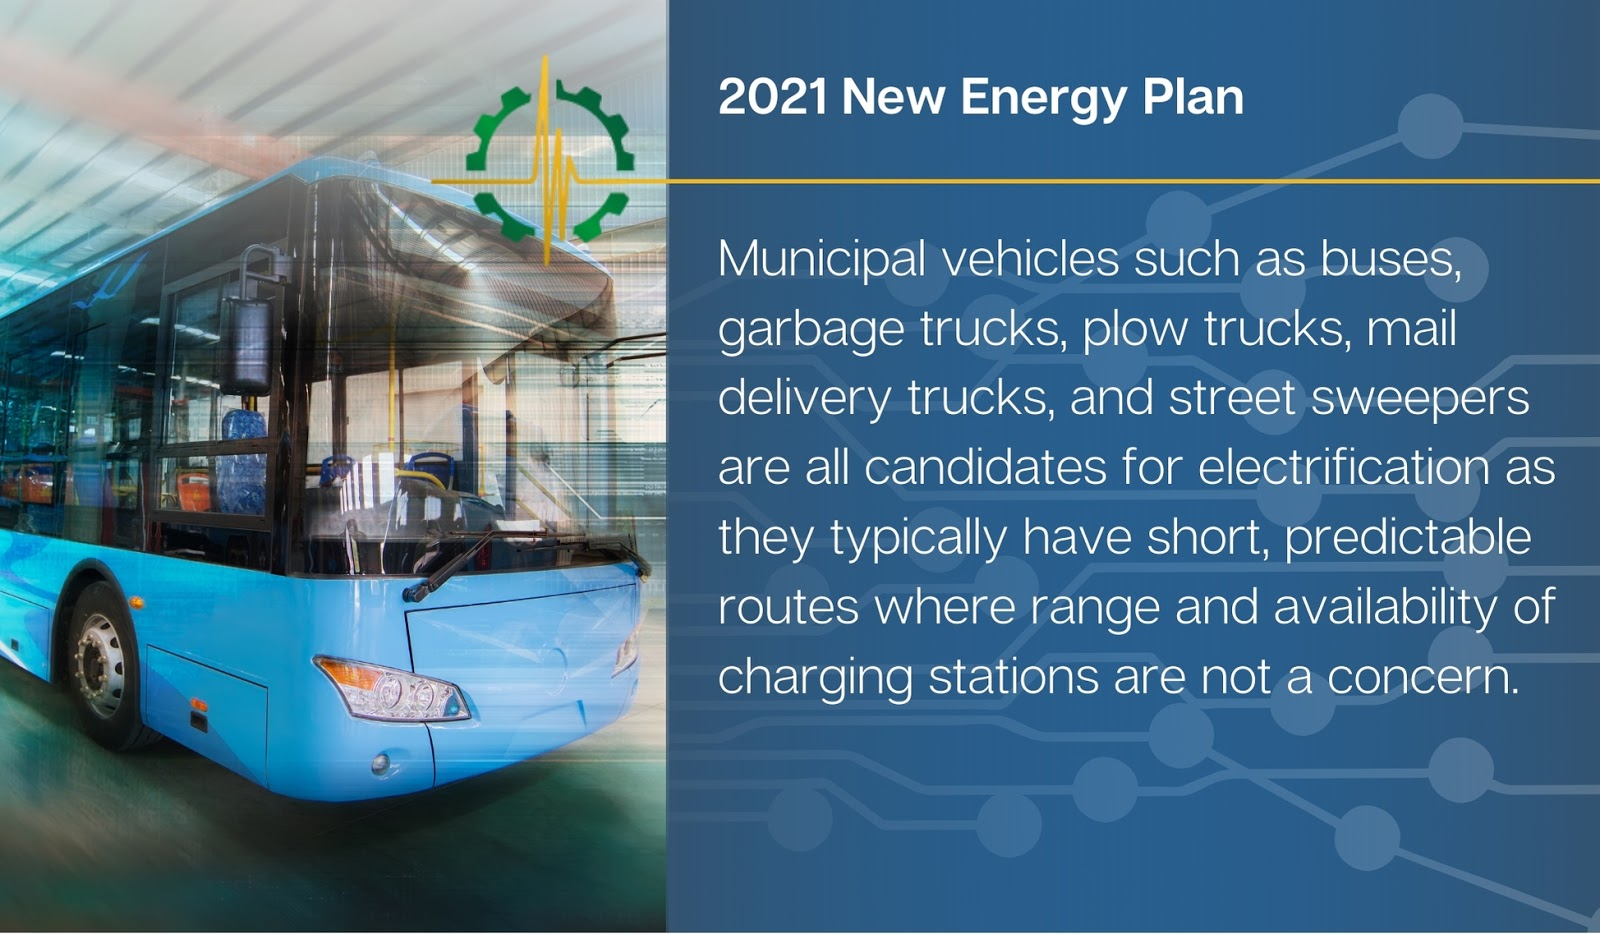 Municipal vehicles such as buses, garbage trucks, and plow trucks are all candidates for electrification